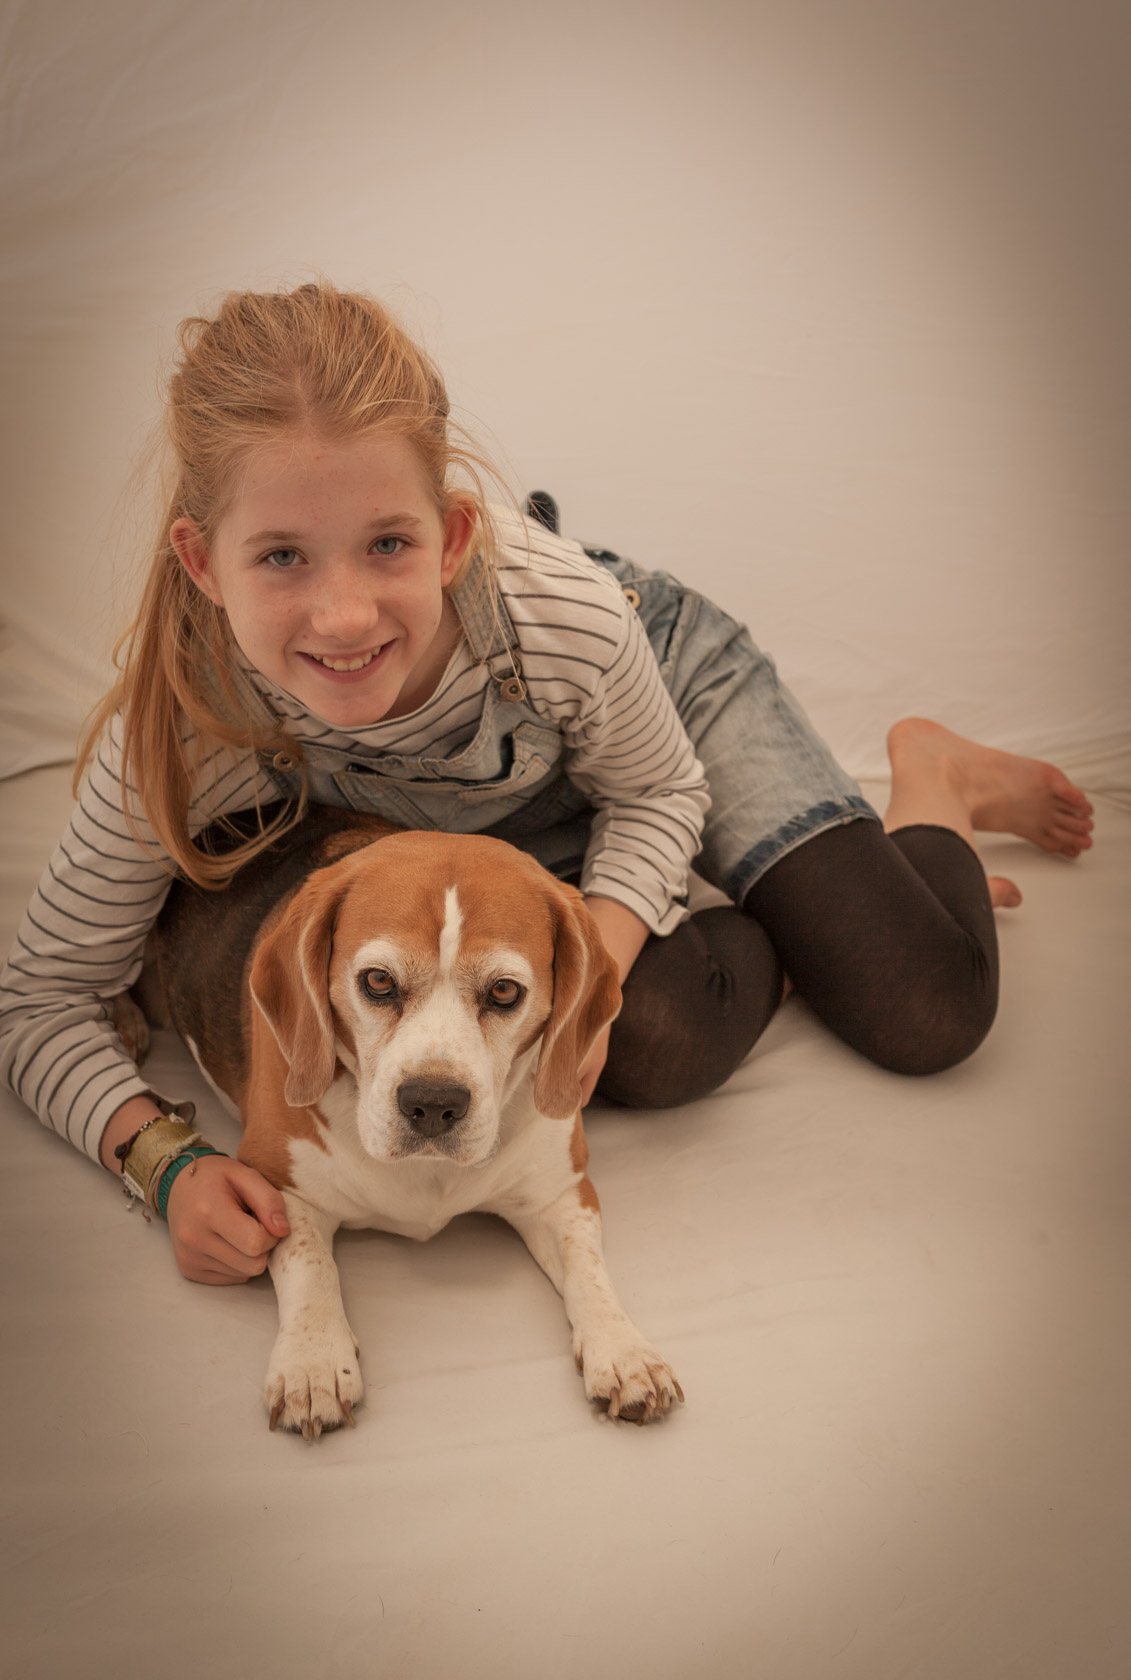 Child portrait with beagle dog in London